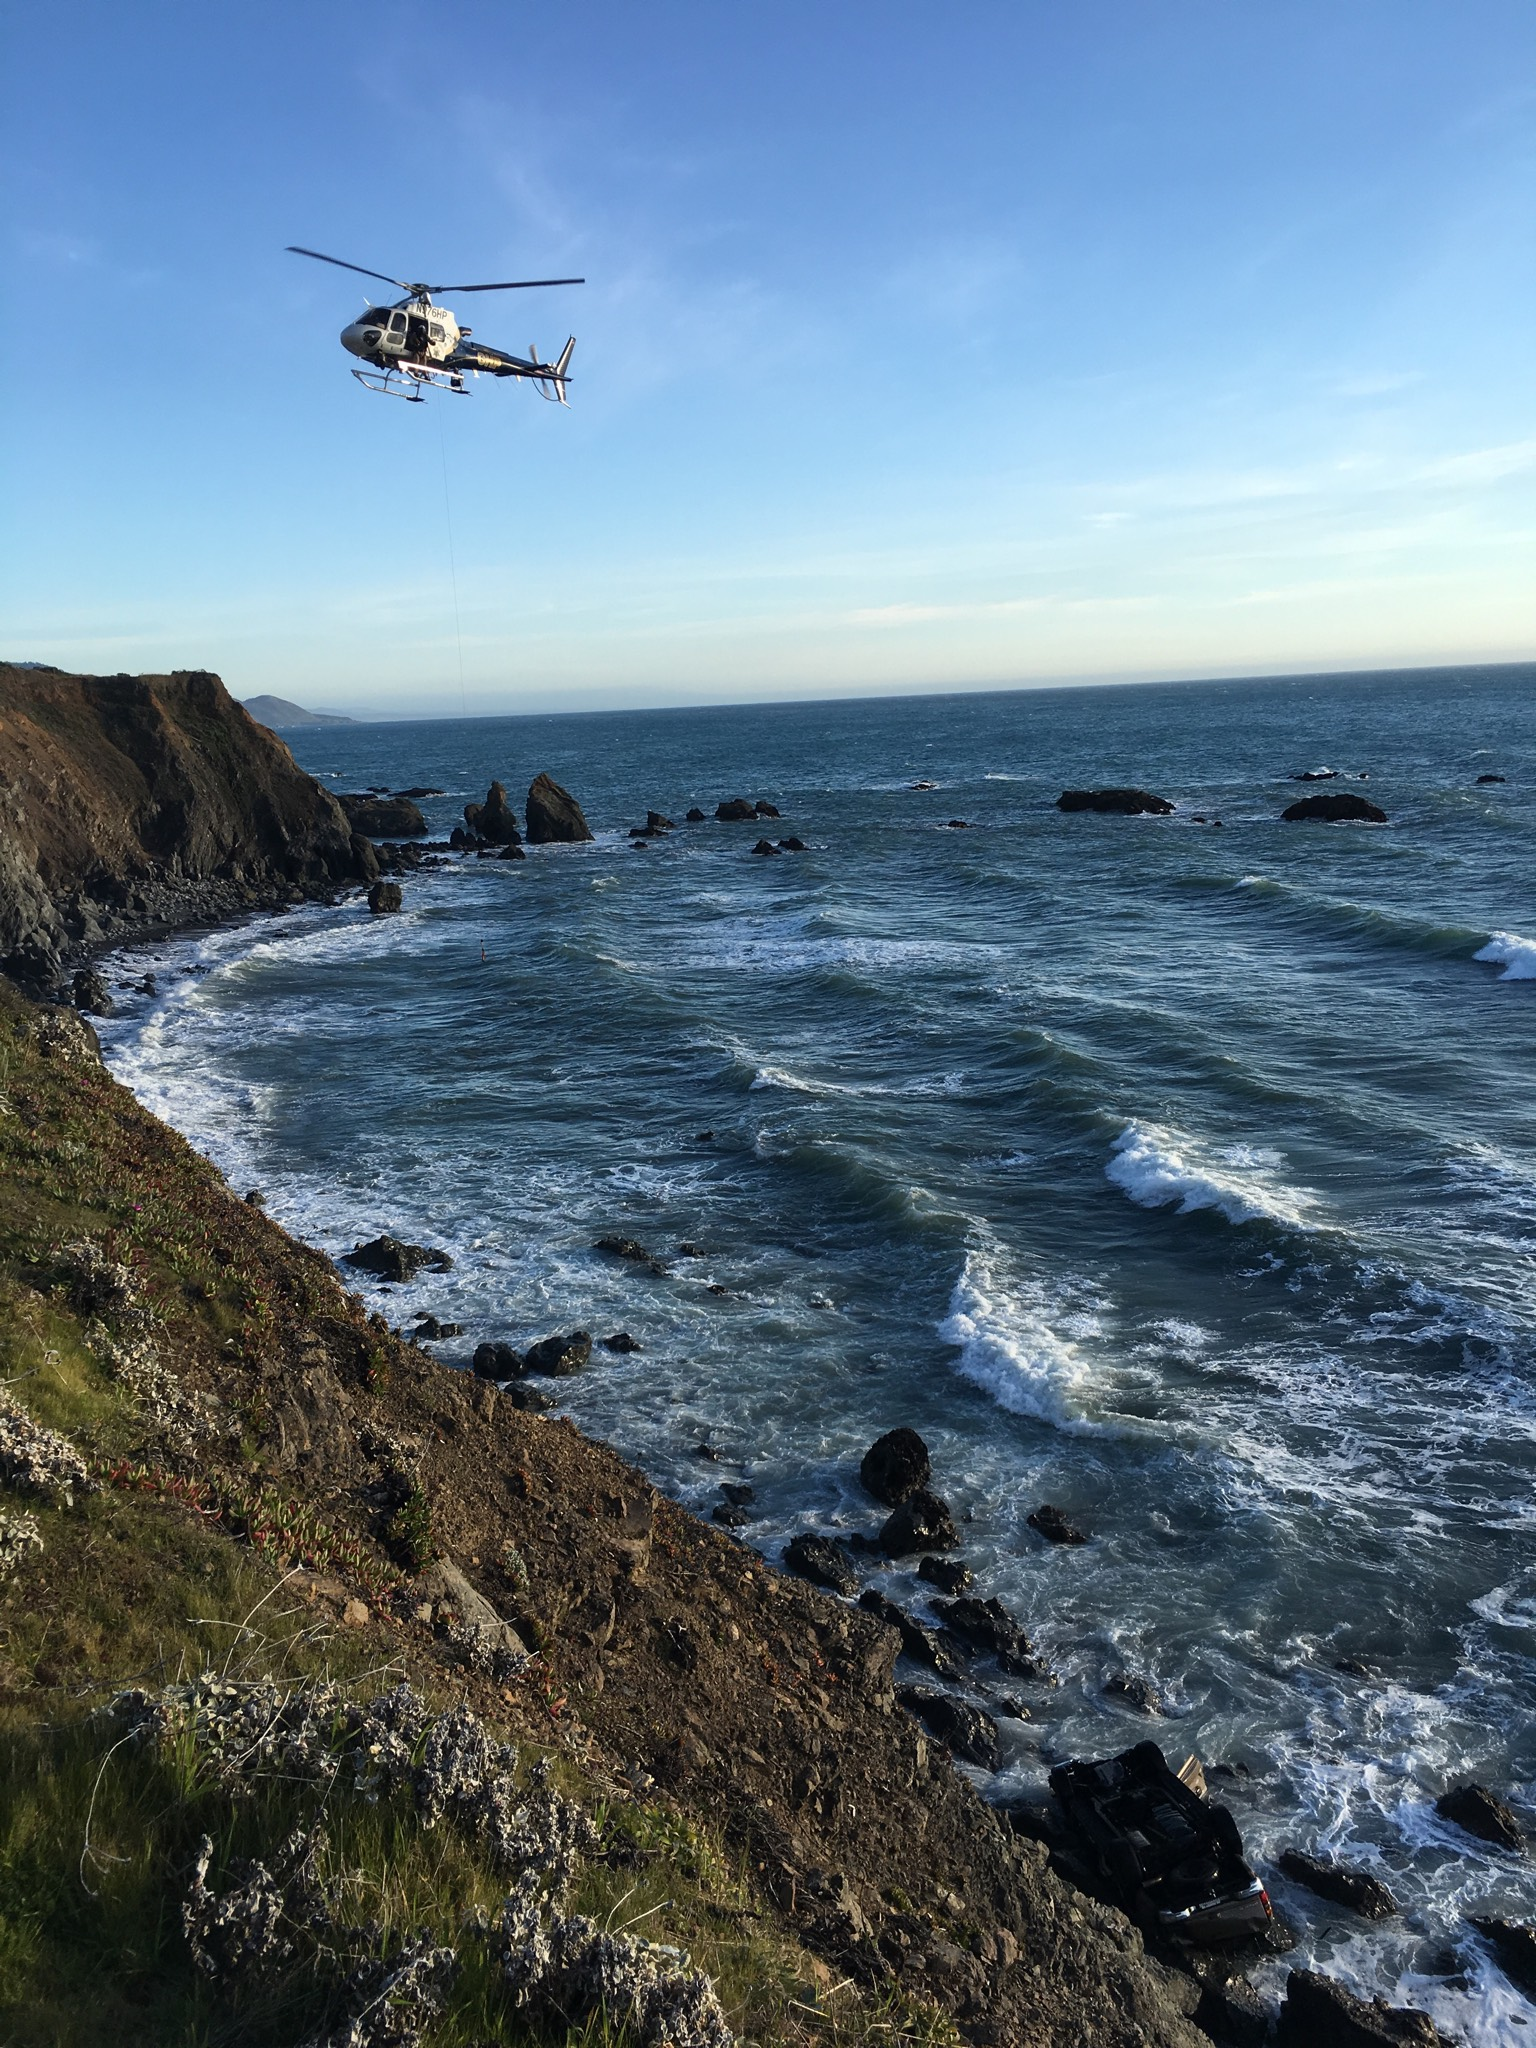 California Highway Patrol says a West Linn family of five died after driving off a cliff on State Route 1. They were found Monday, March 26, 2018. Photo courtesy California Highway Patrol